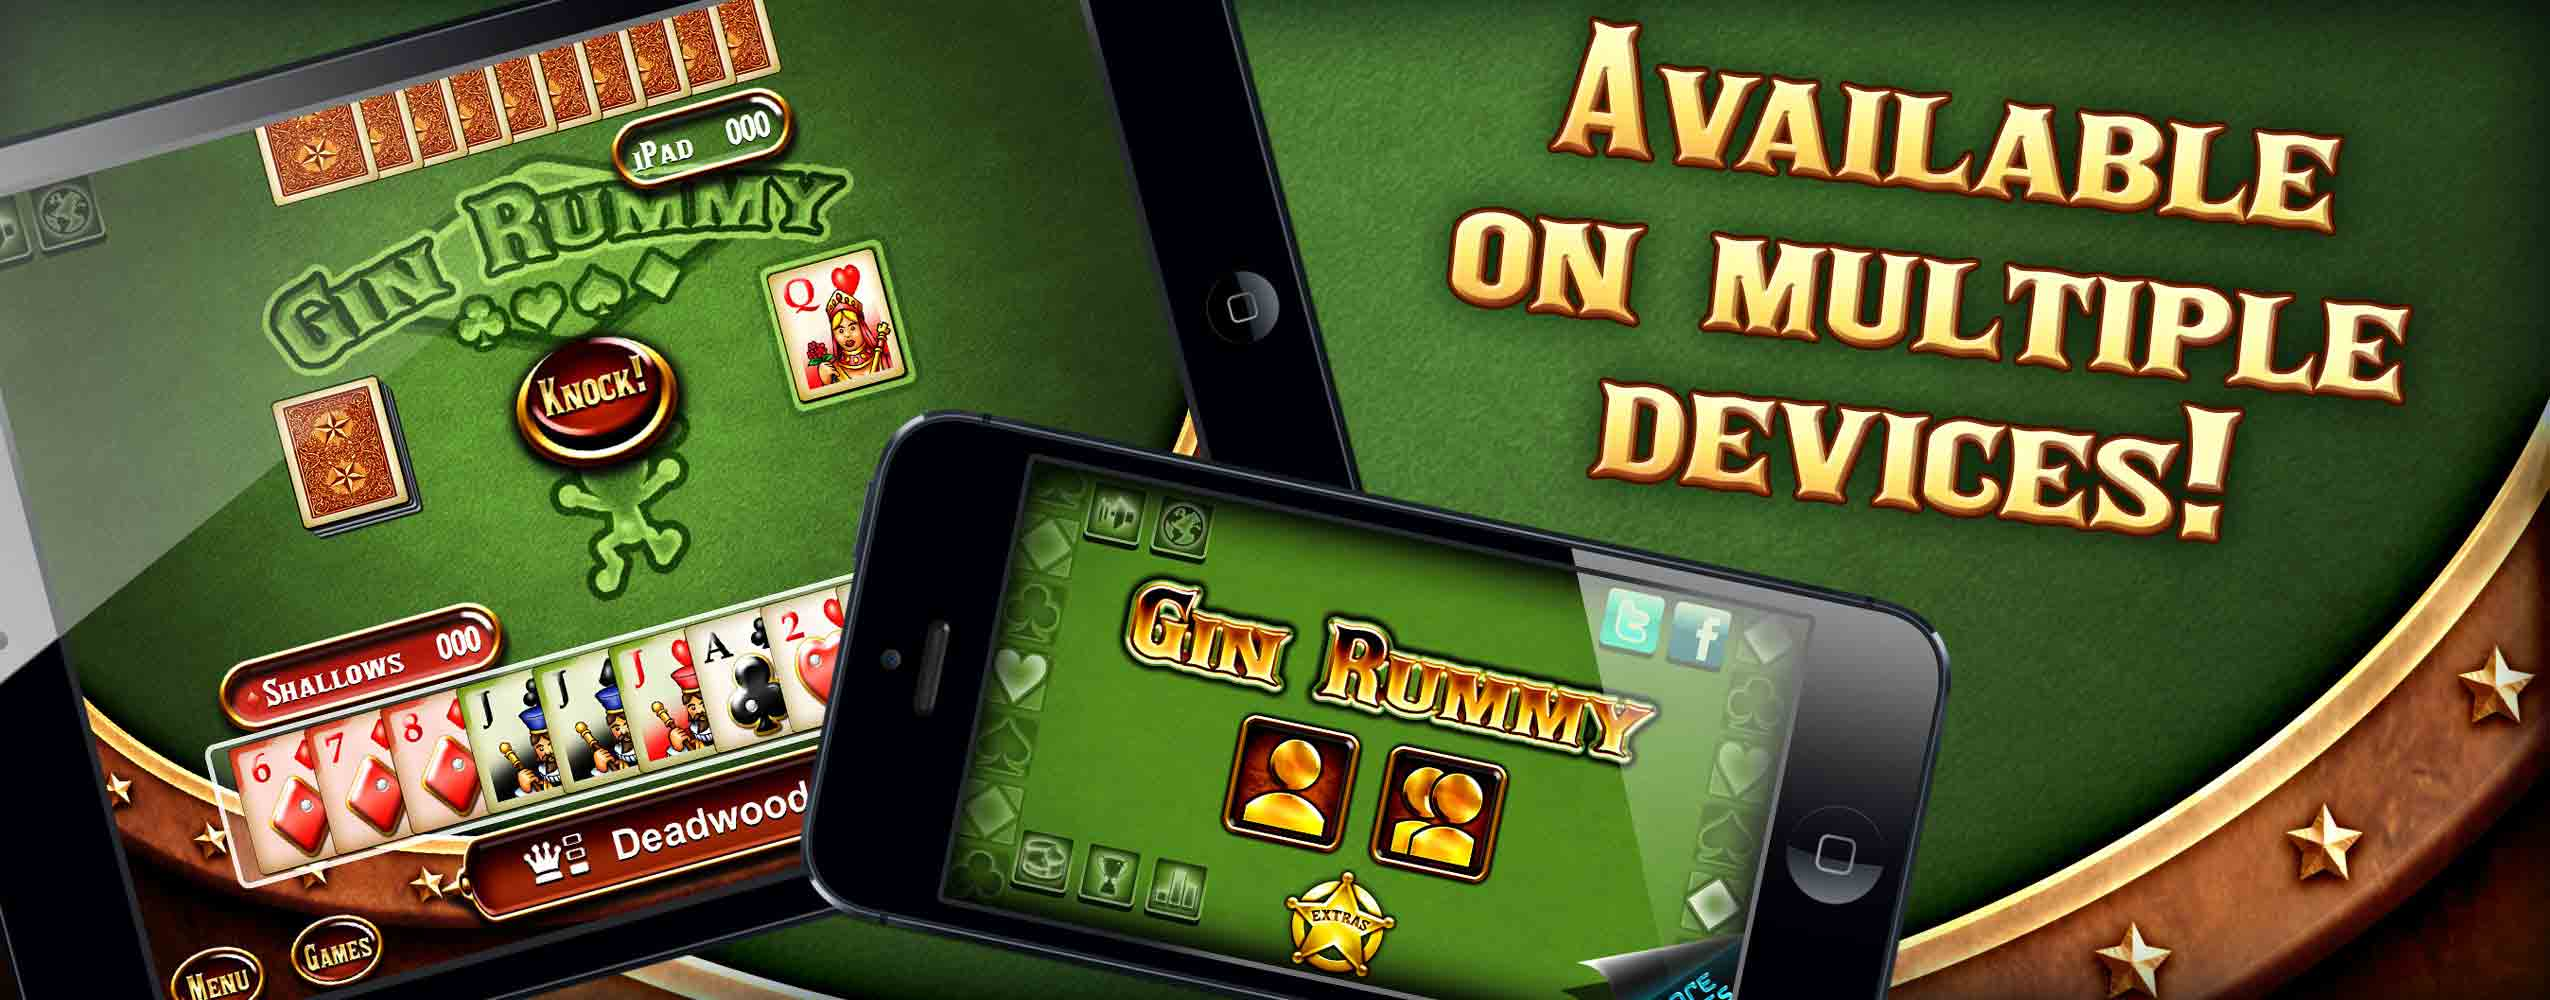 Gin Rummy is available on multiple devices!